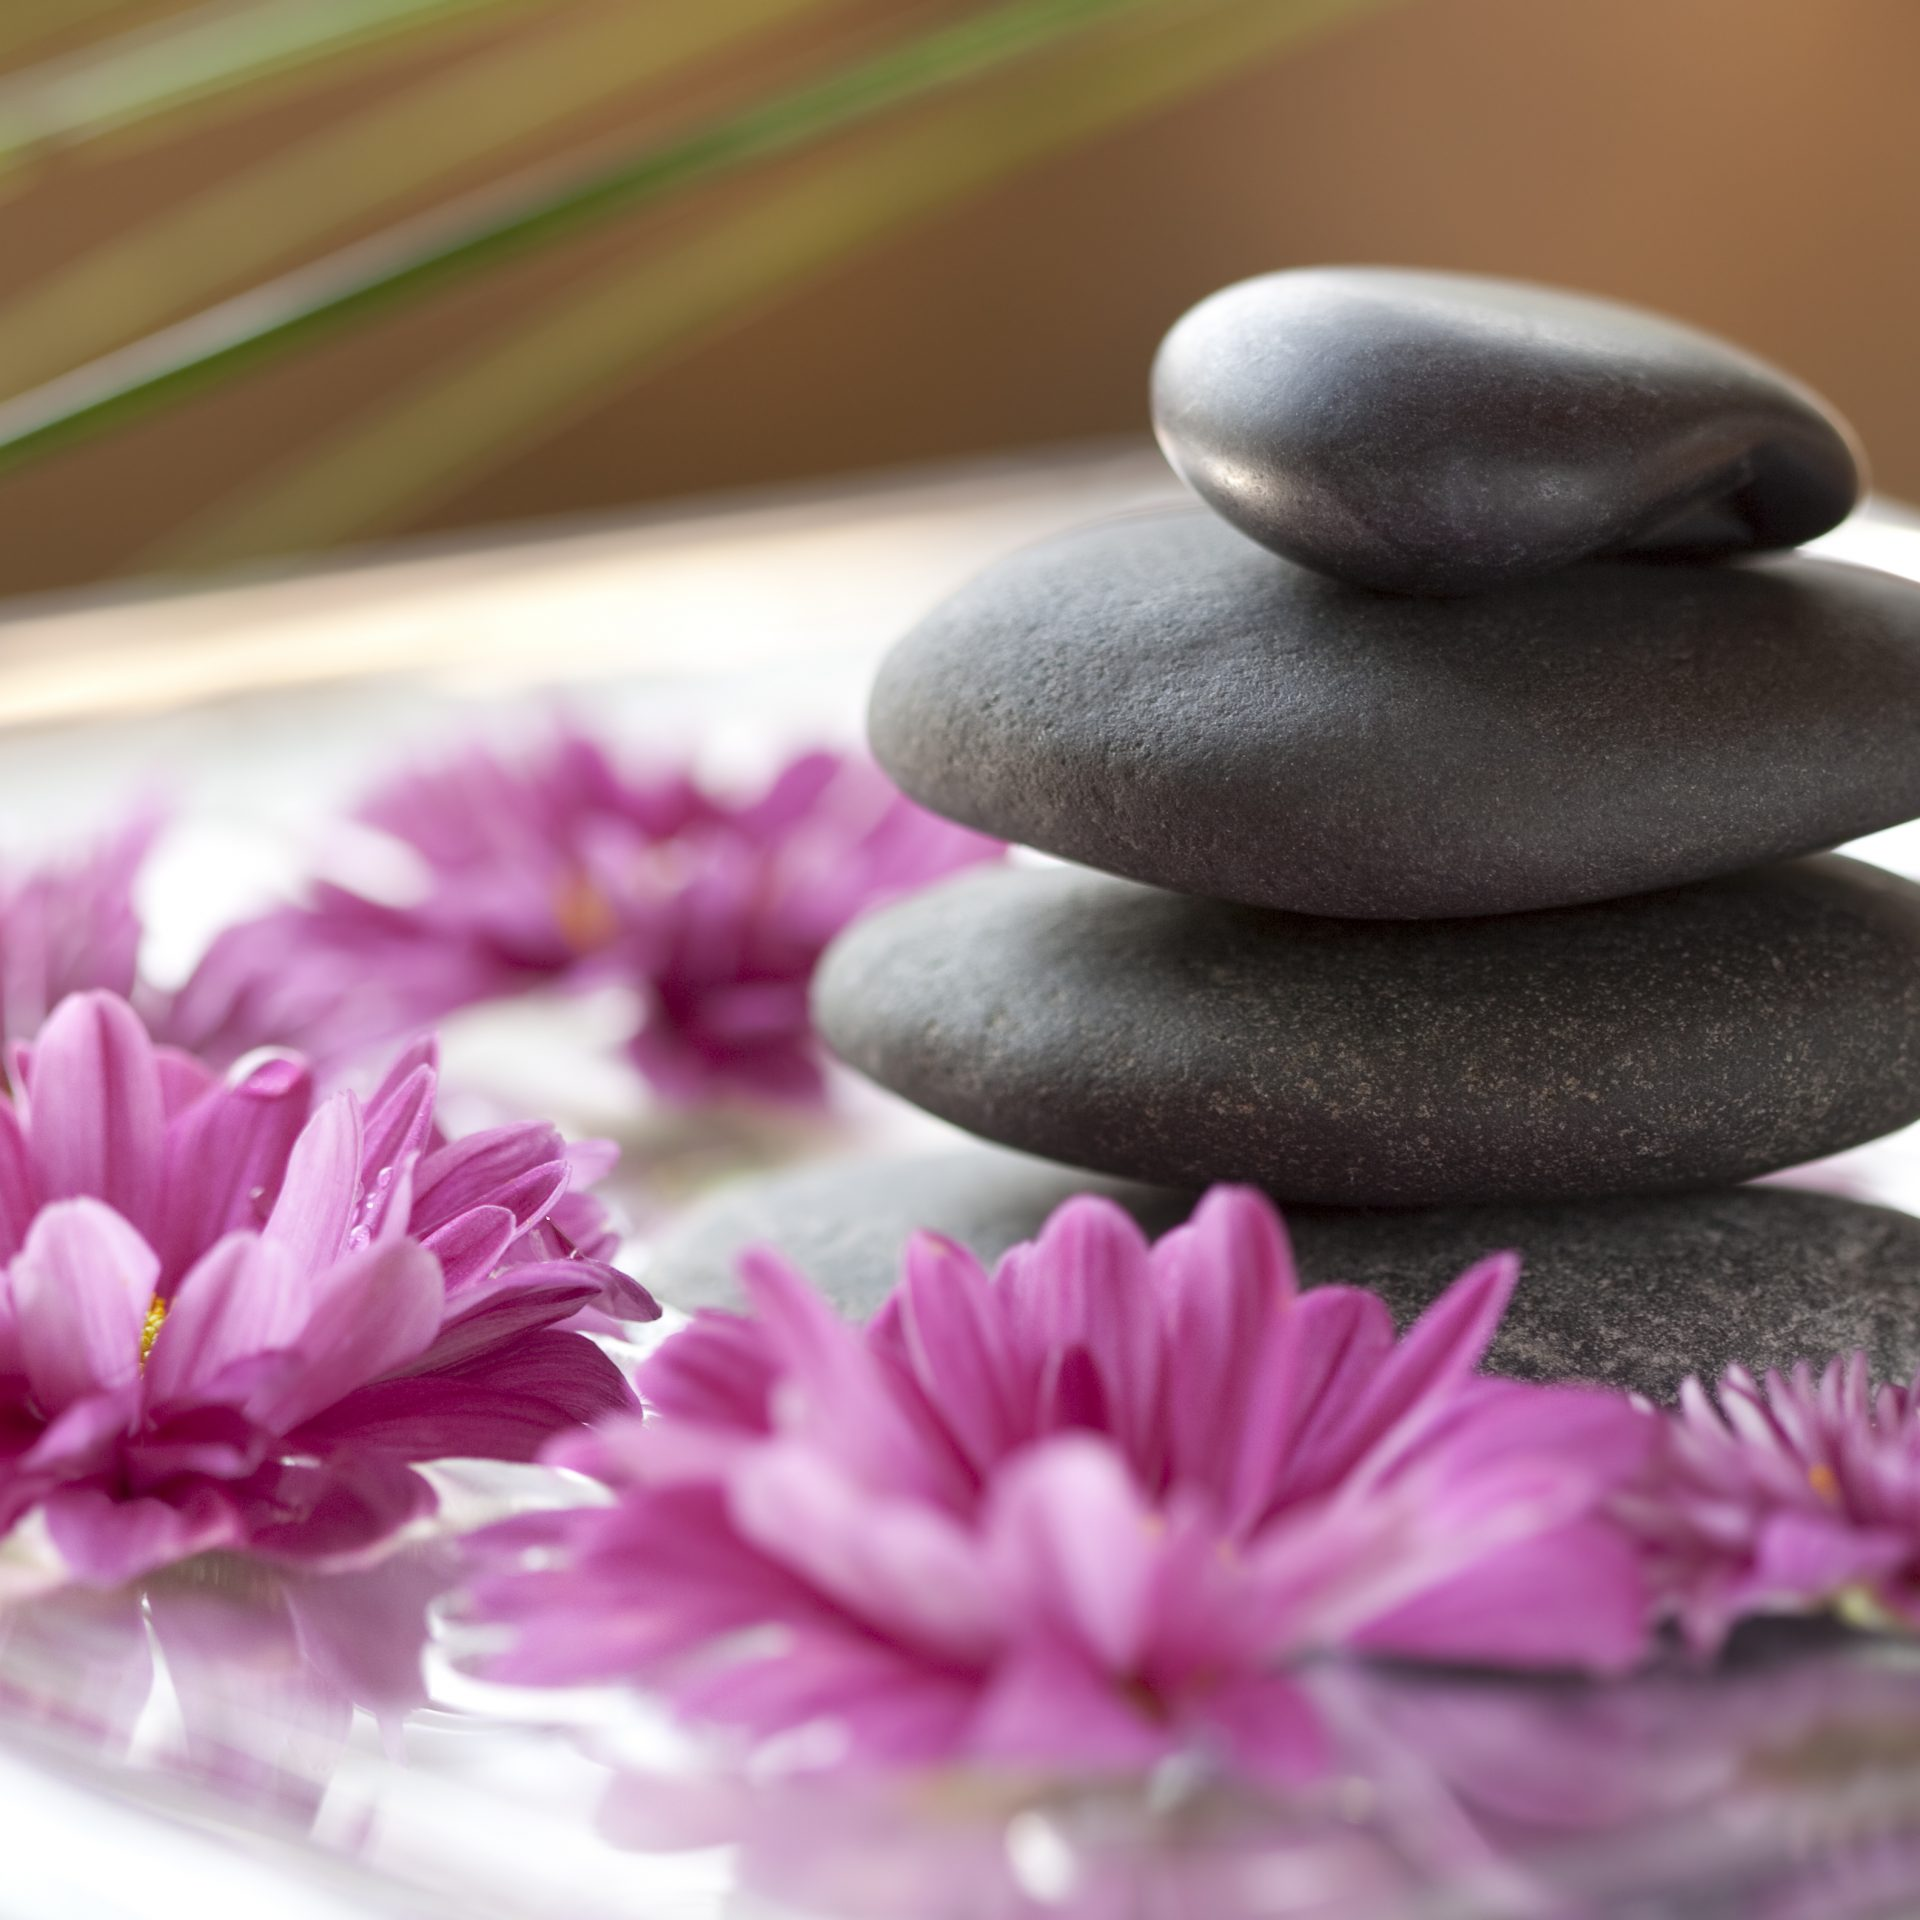 Stacked Spa Rocks and Lotus Flowers